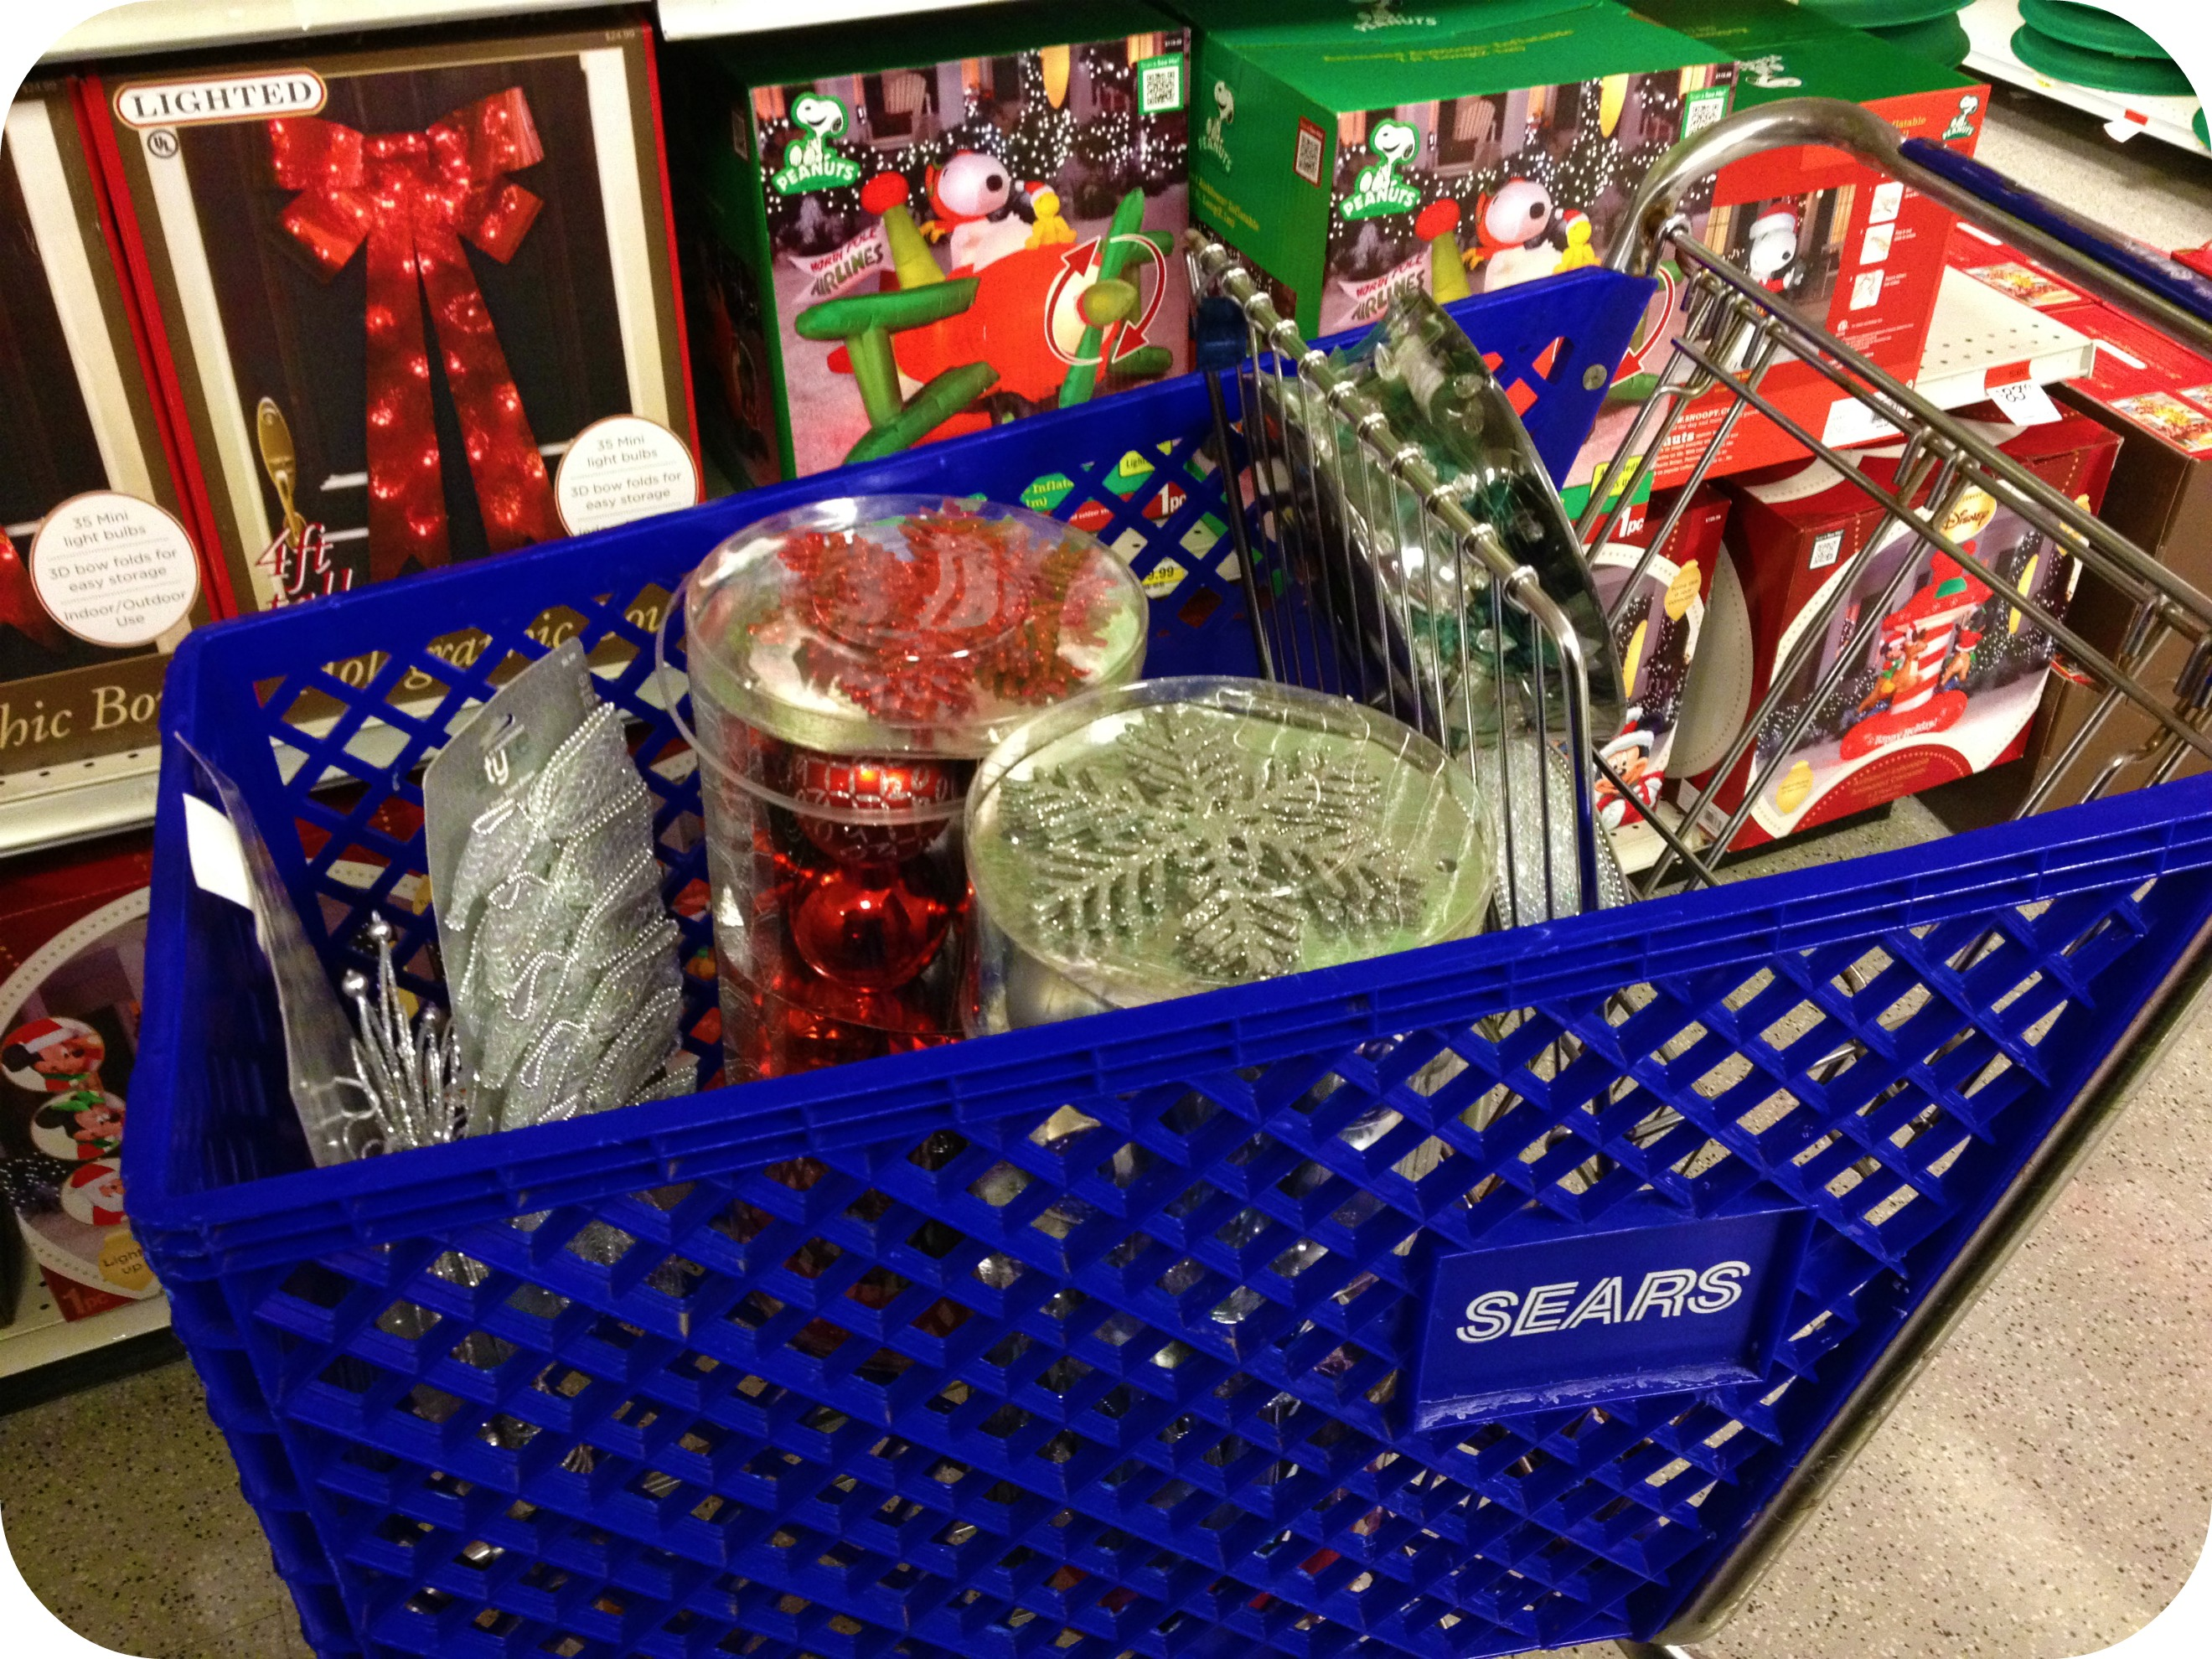 Tree Trimming: Sears Shopping Mission. #SearsRealCheers